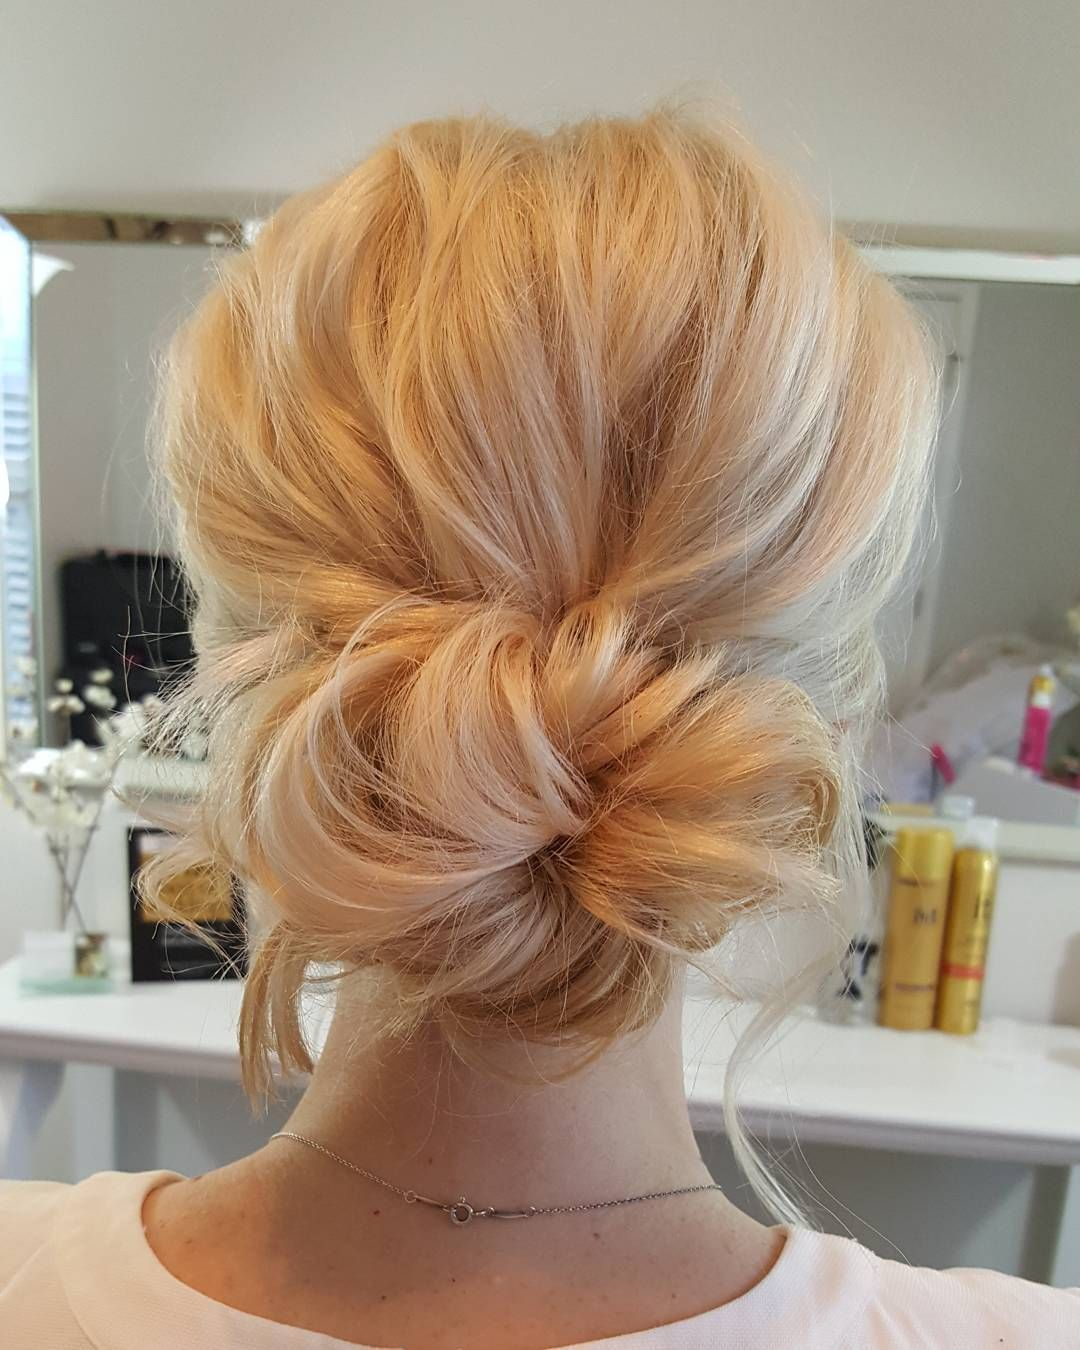 soft boho bun for the win✌ #bride #bridetobe #bridalhair